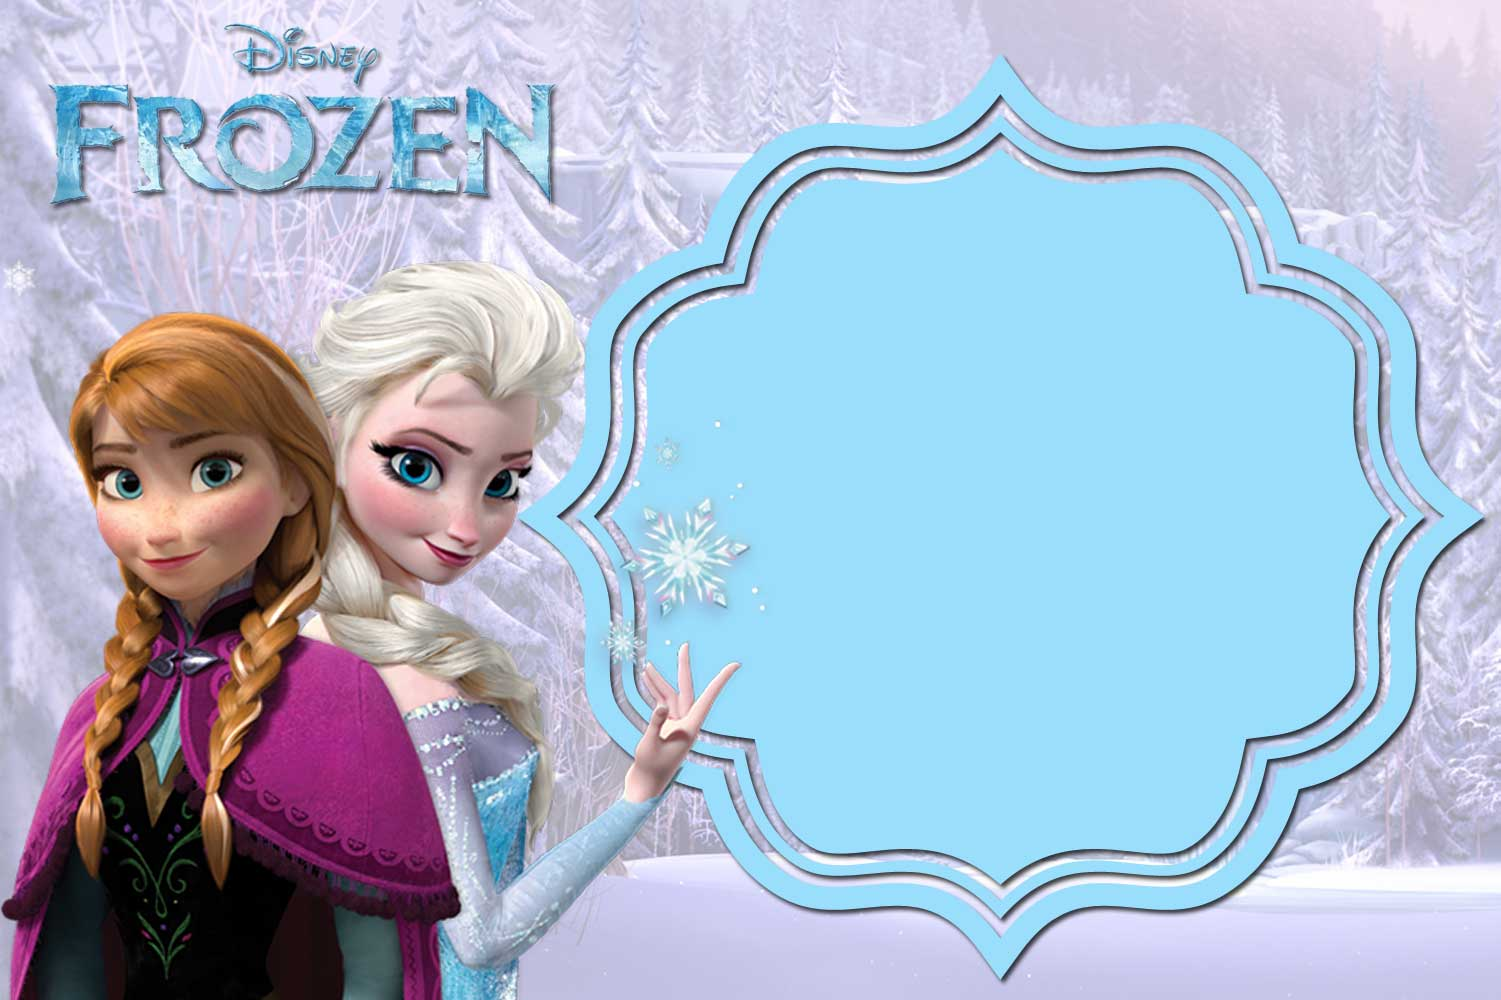 Free printable frozen anna and elsa invitation templates drevio this frozen invitation template is free to use for your personal use only you can buy cardstock paper at amazon cardstock paper gives authentic and solutioingenieria Image collections